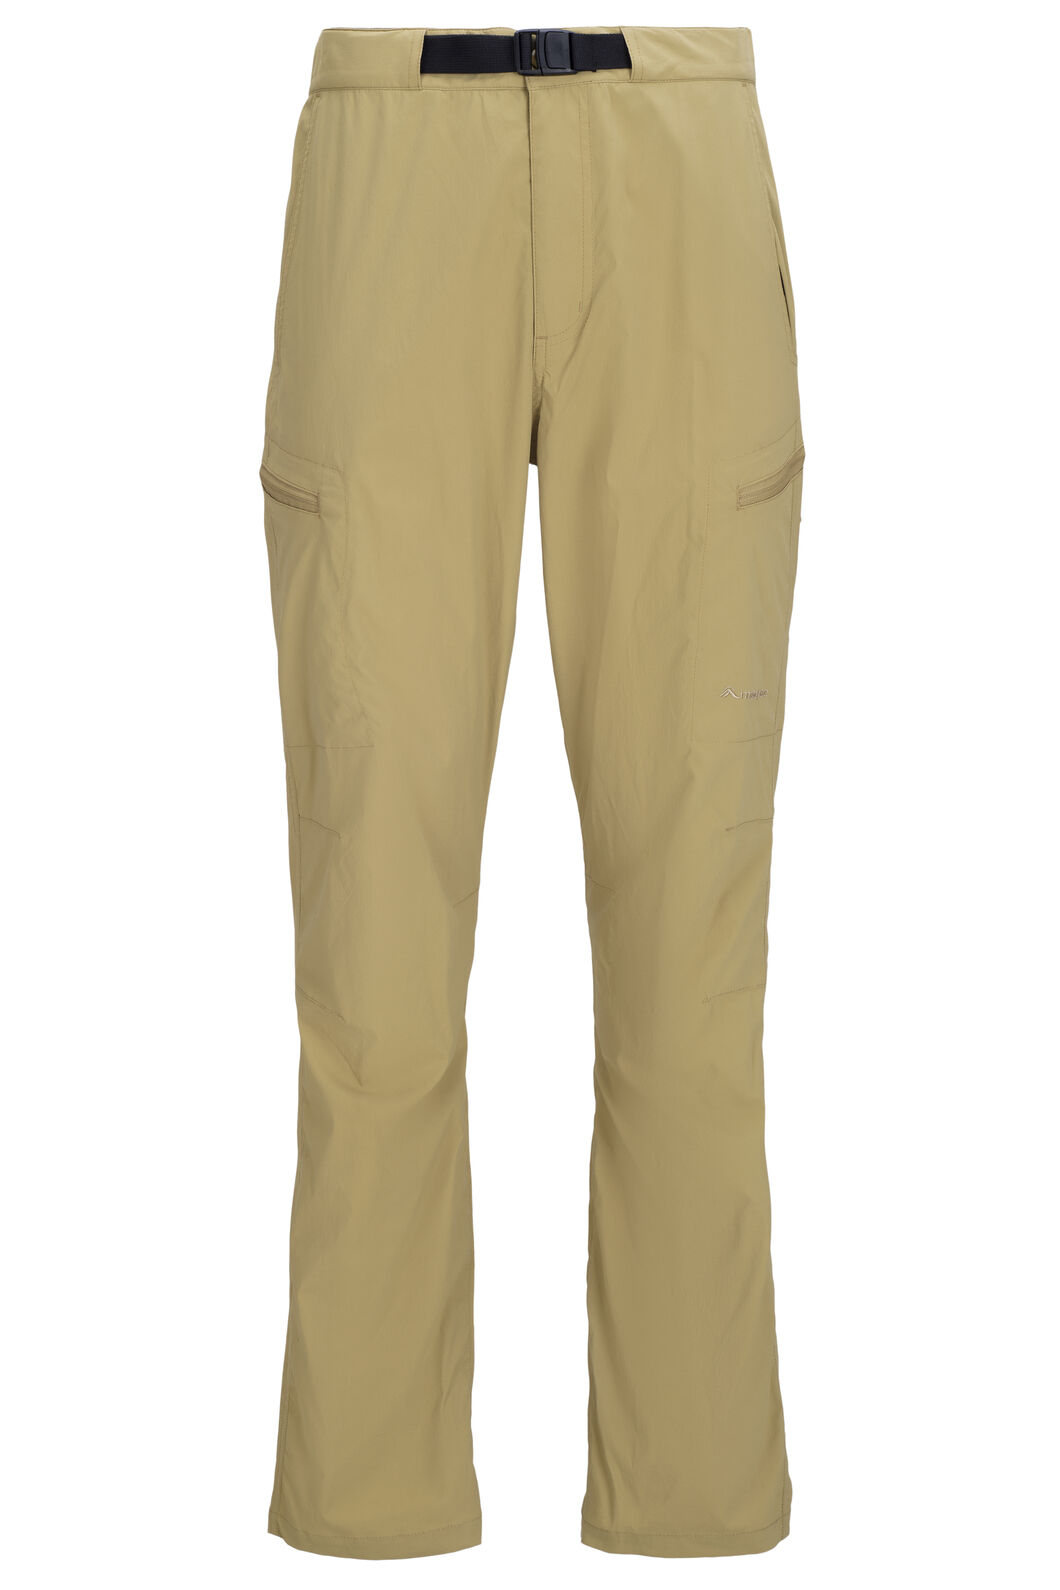 Macpac Drift Pants — Men's, Khaki, hi-res